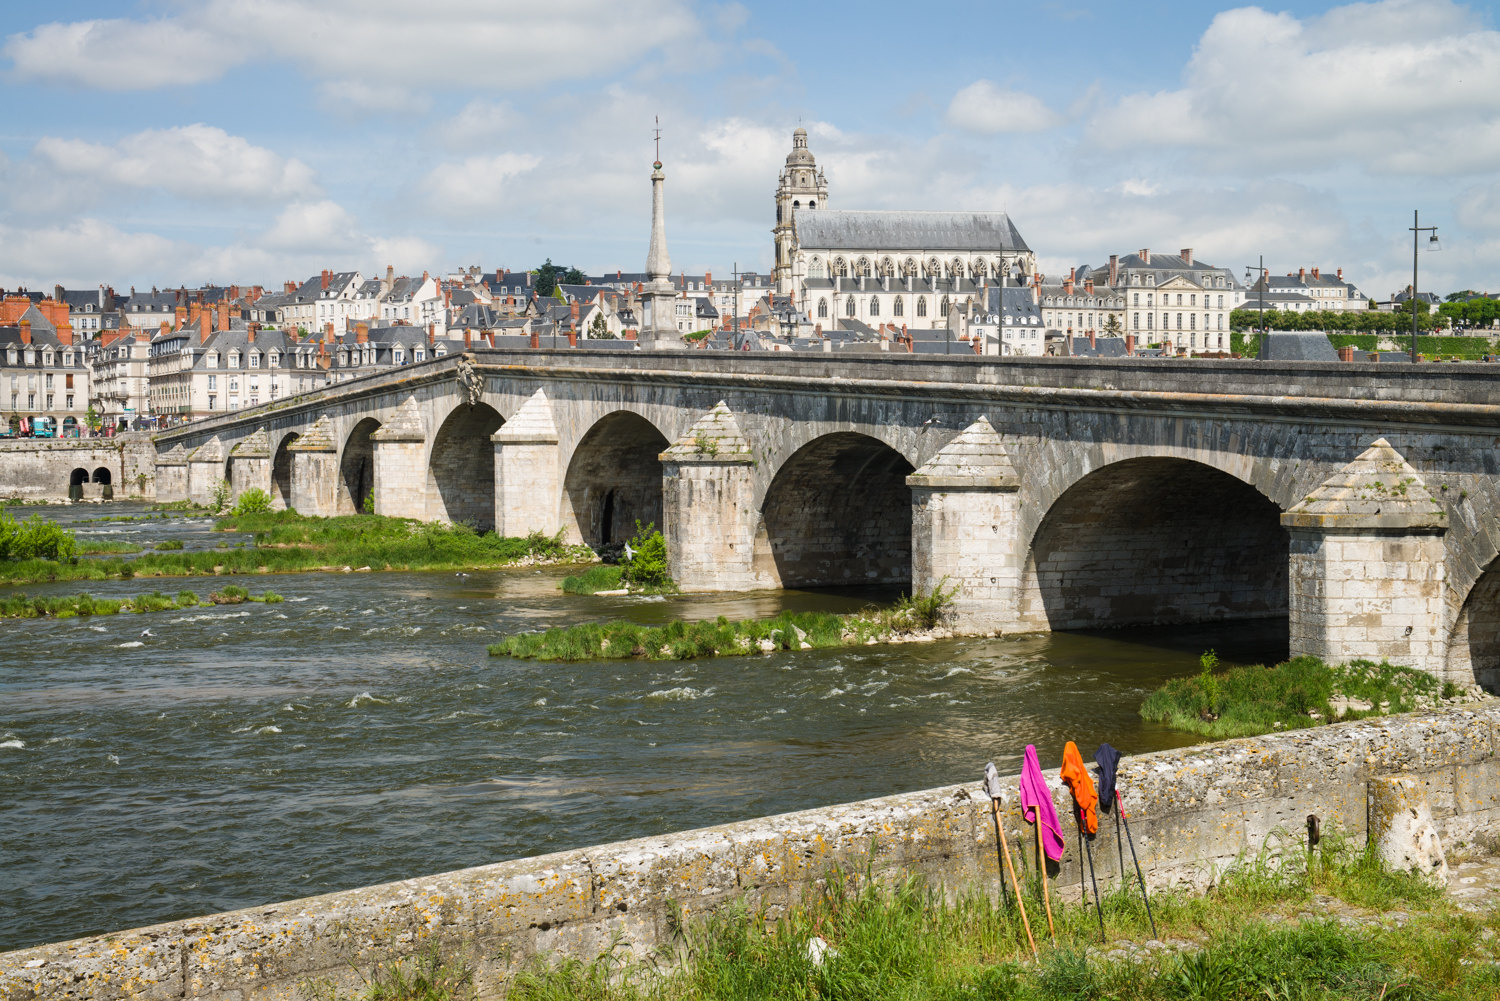 Blois, Loire Valley  PHOTOGRAPHY: William Lounsbury • NIKON D800 • AF-S NIKKOR 24-70MM F/2.8G ED @ 52MM • Ƒ/11 • 1/200 • ISO 200